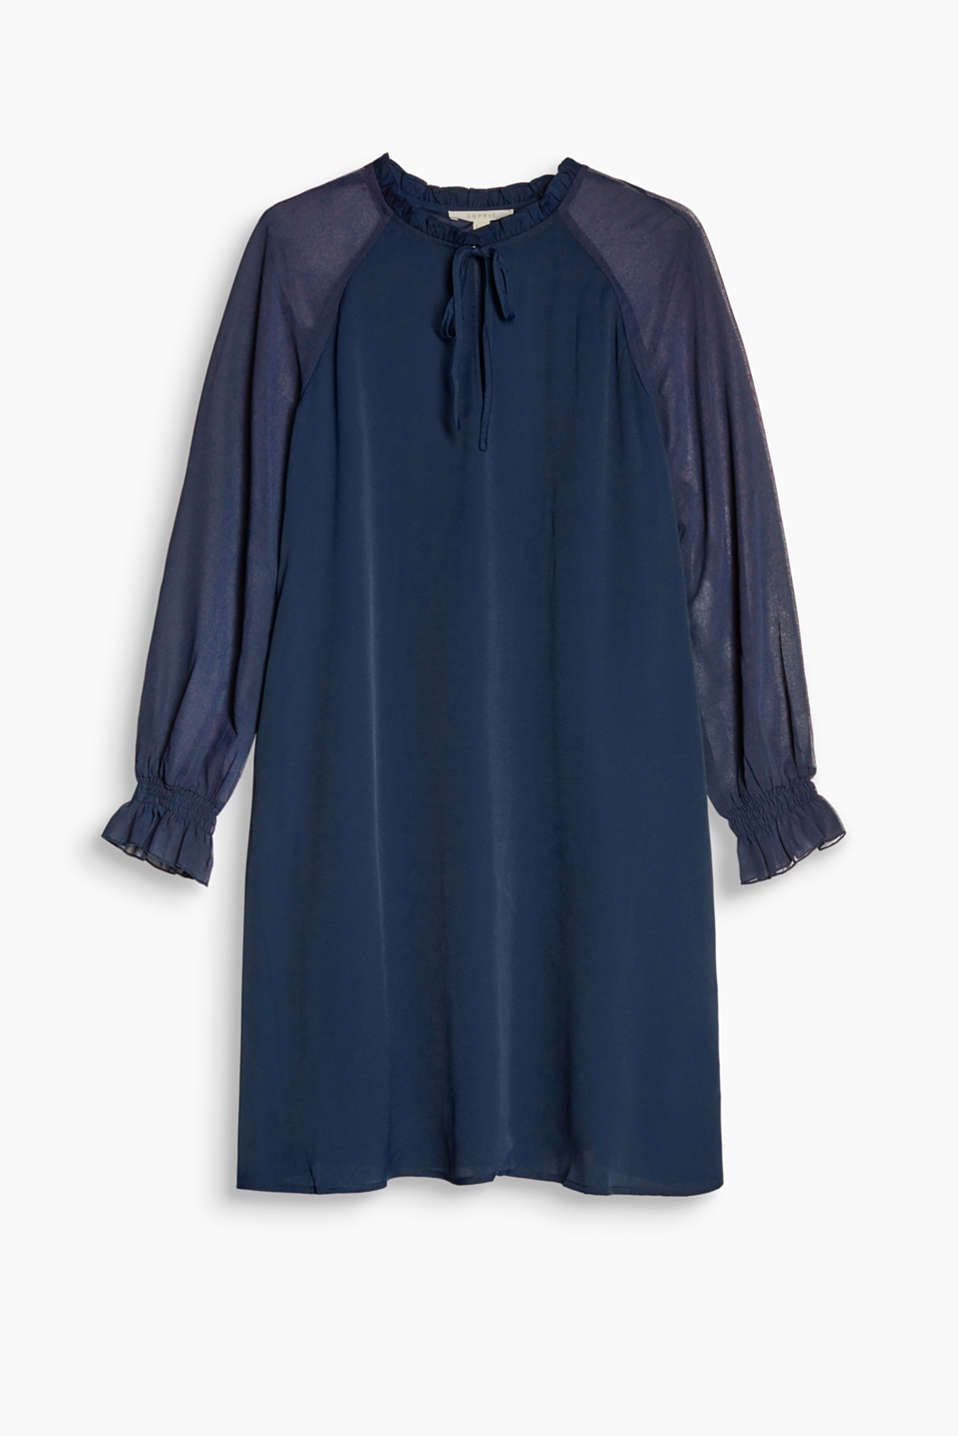 This crepe chiffon dress with a frilled collar comes in a softly flowing A-line silhouette